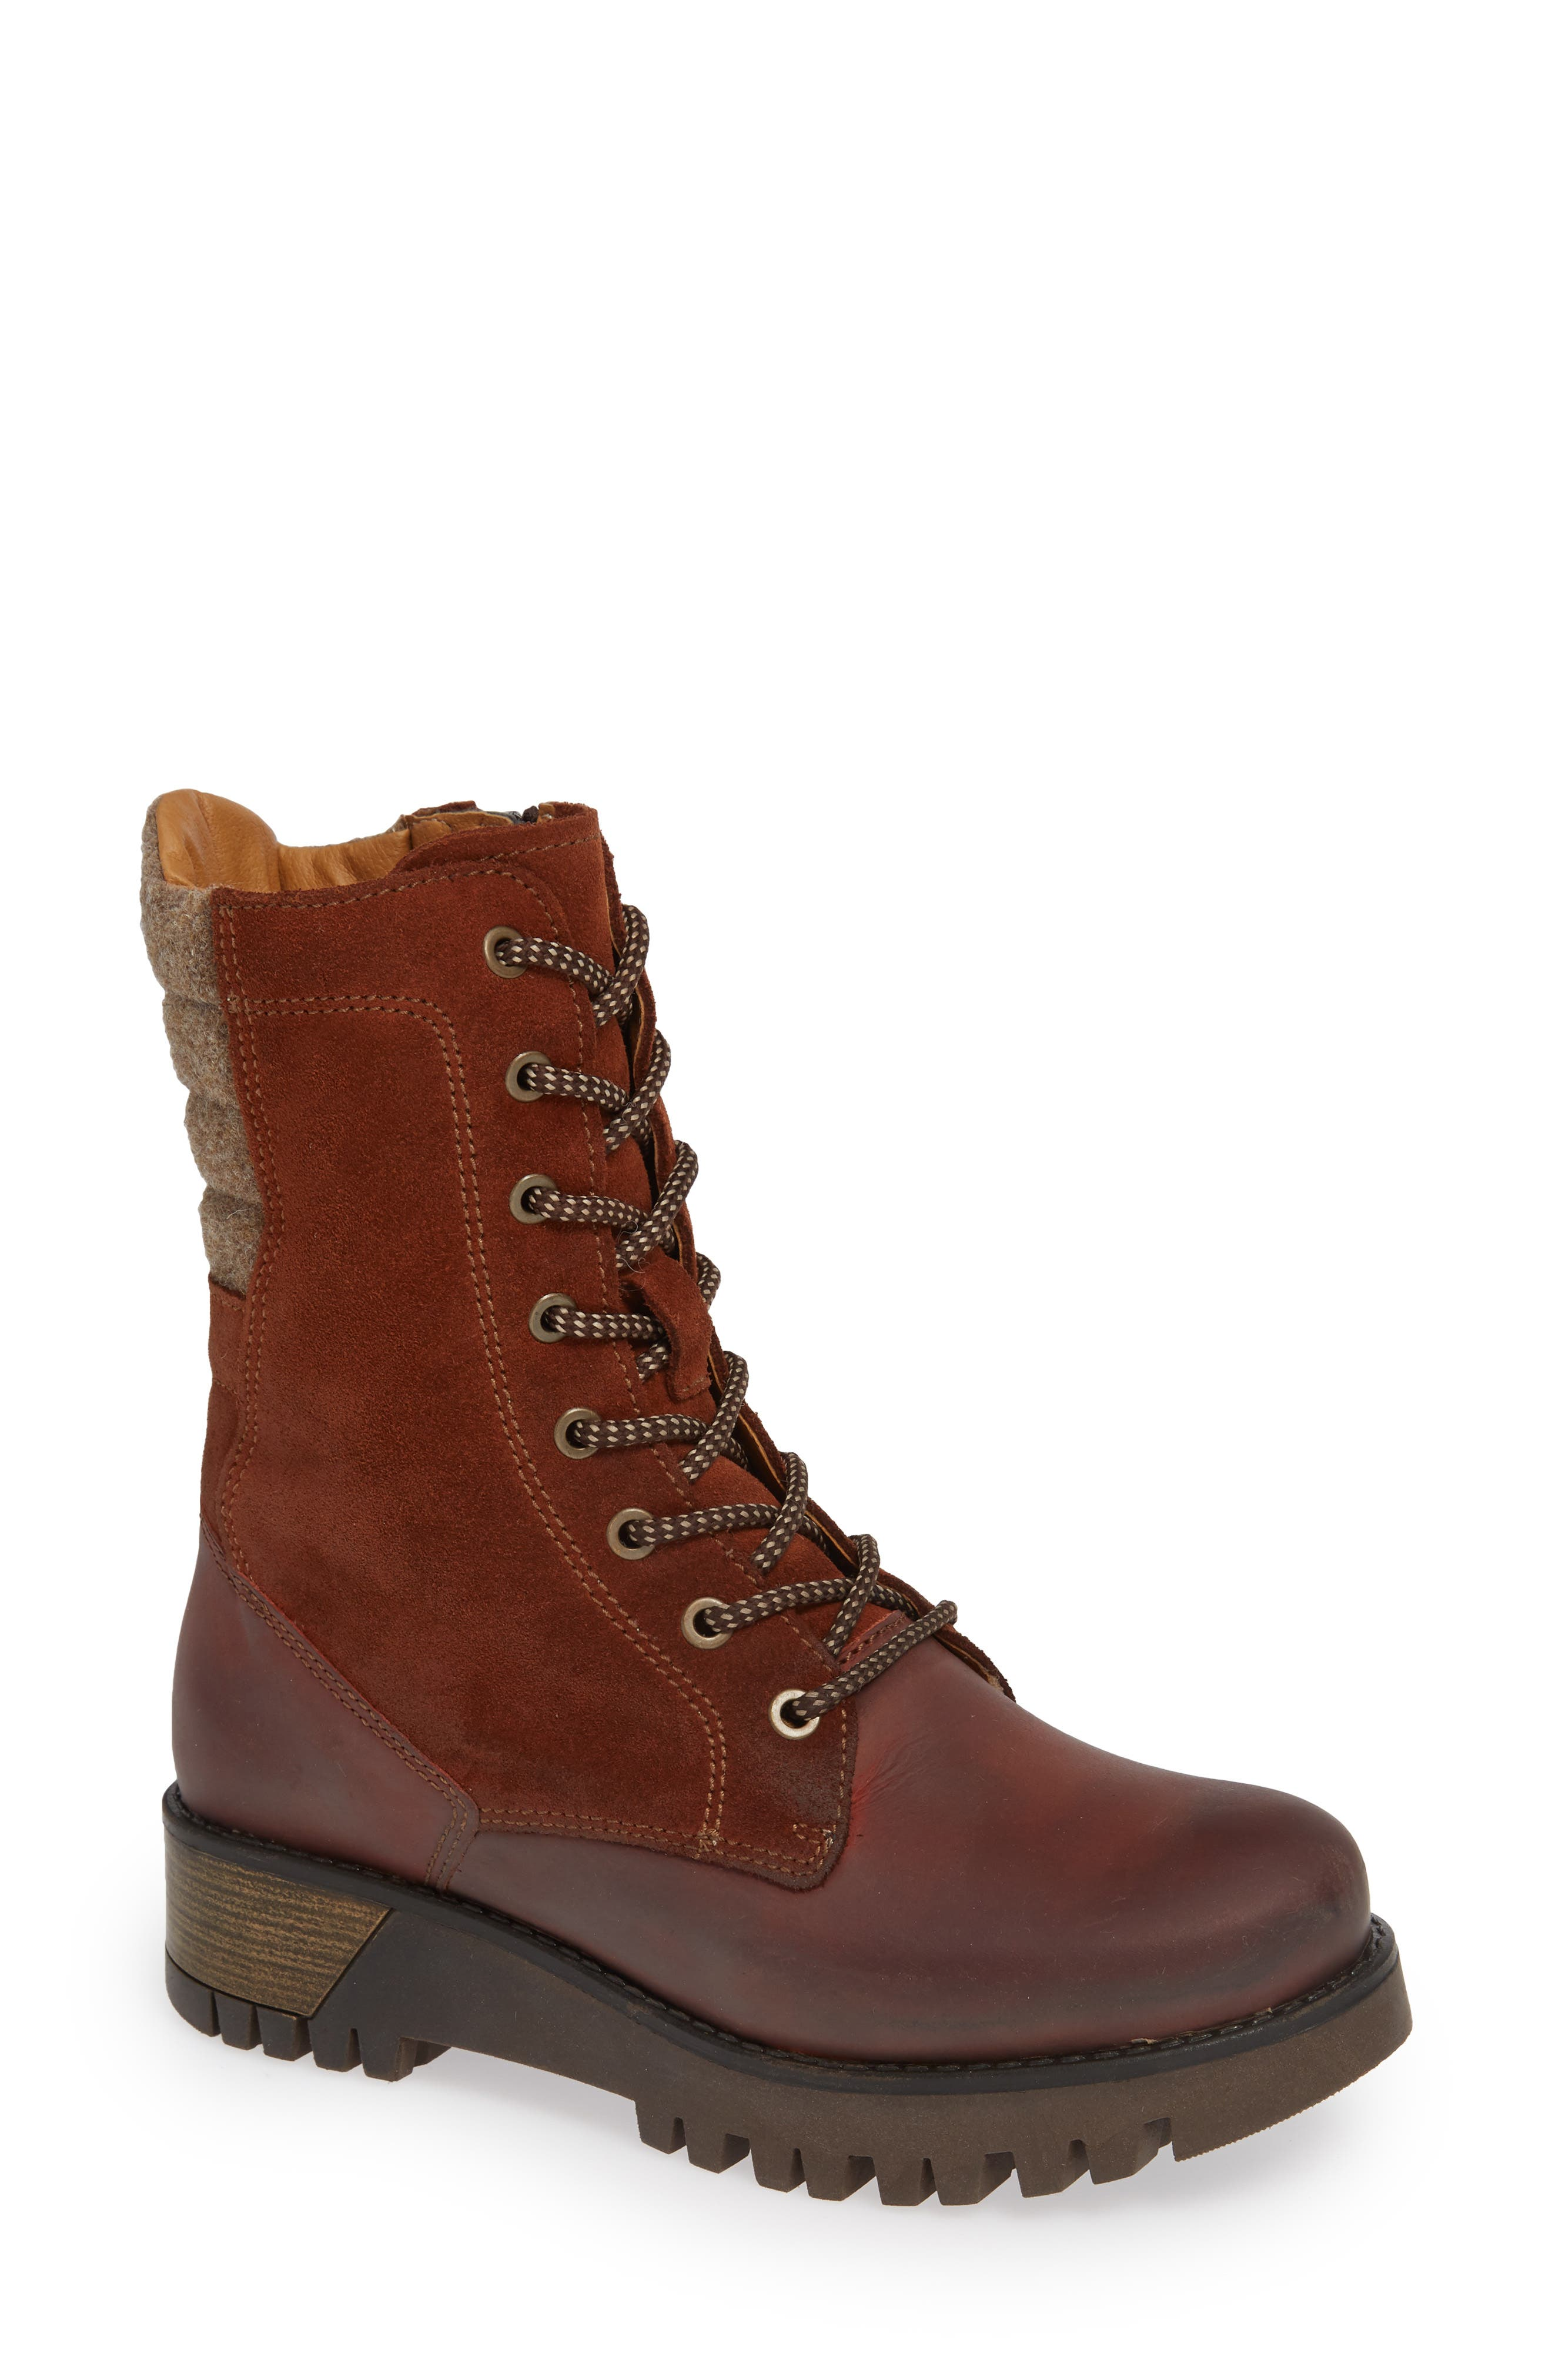 BOS. & CO.,                             Guide Waterproof & Insulated Hiking Boot,                             Main thumbnail 1, color,                             RUST SUEDE